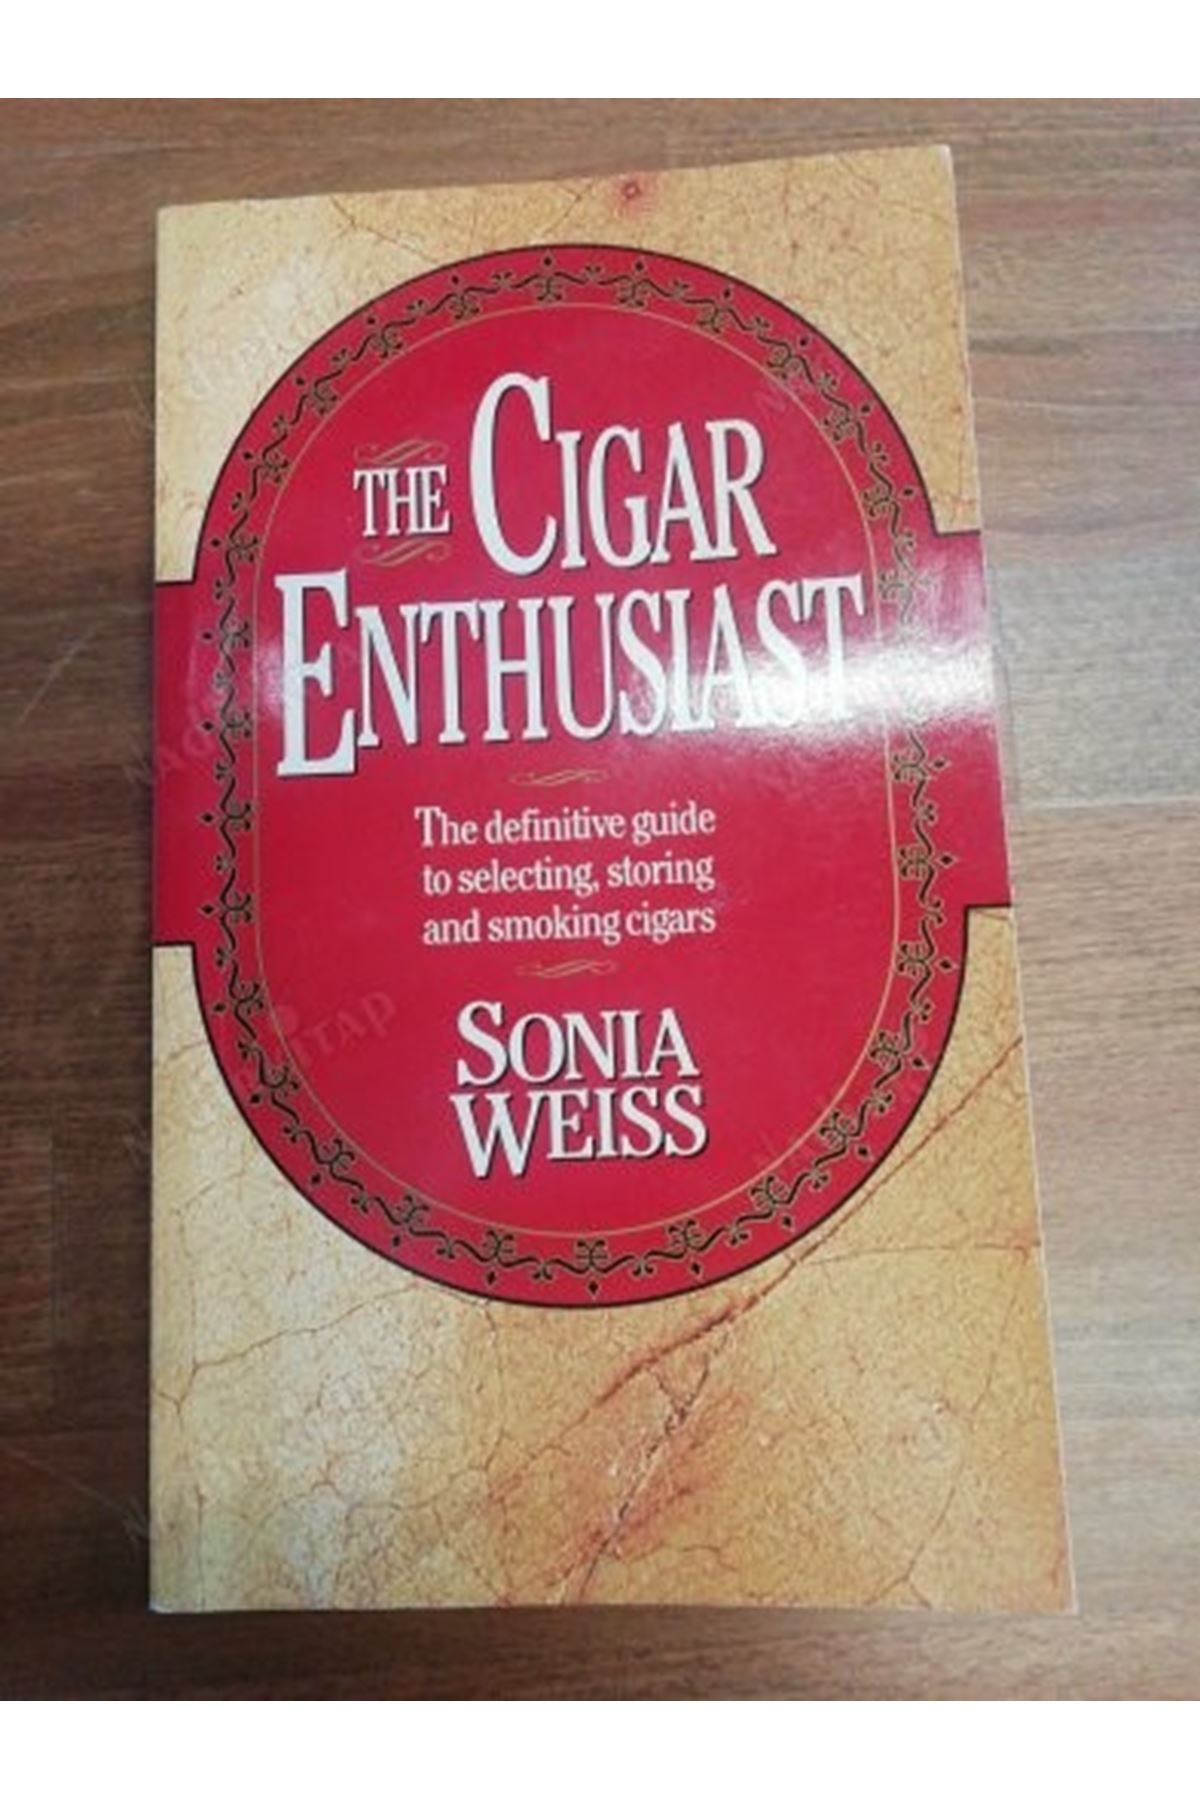 SONIA WEISS - THE CIGAR ENTHUSIAST